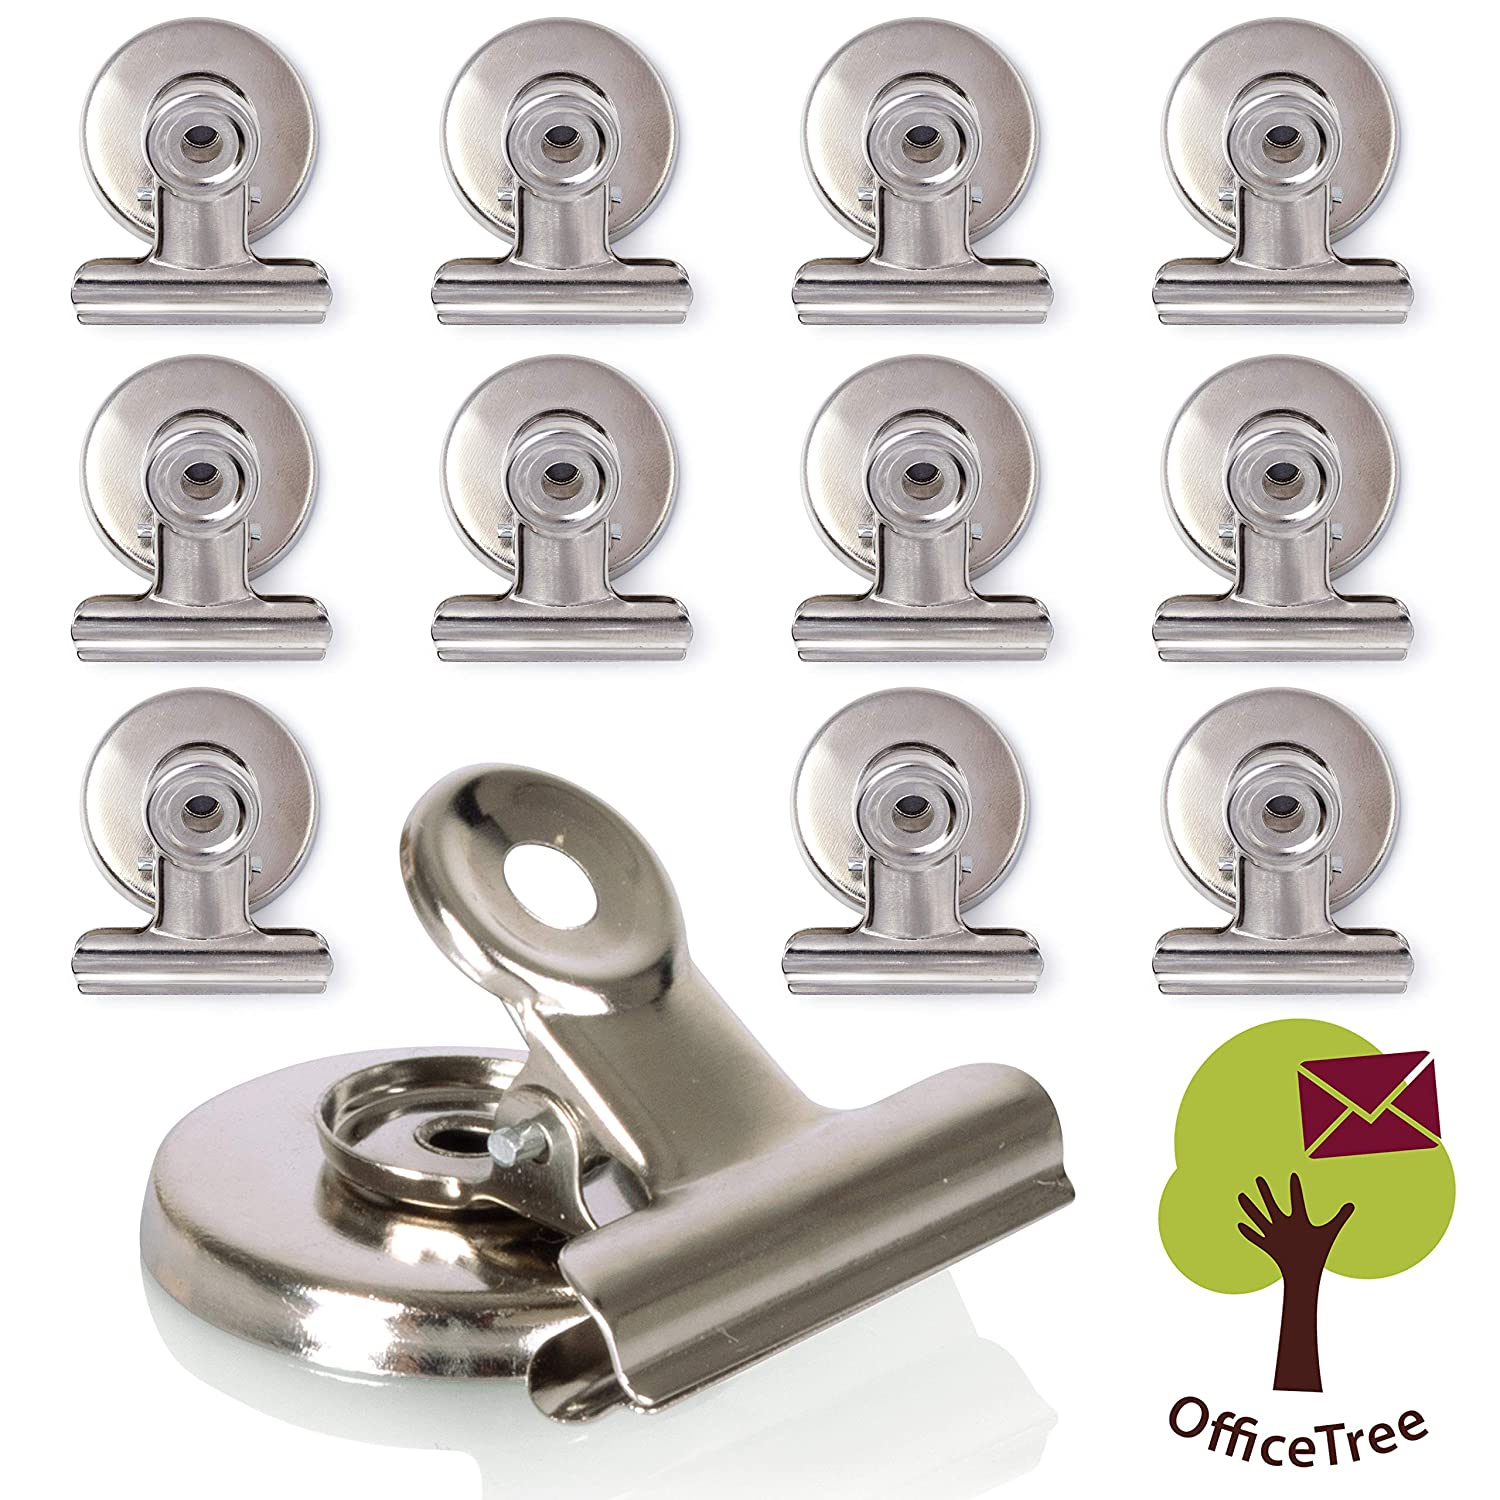 37 x 28 x 30 mm Silver Magnetic Board and pinboard with Anti-Scratch Adhesive Extra Strong Adhesion to whiteboard OfficeTree 12 Magnetic Clips Neodymium